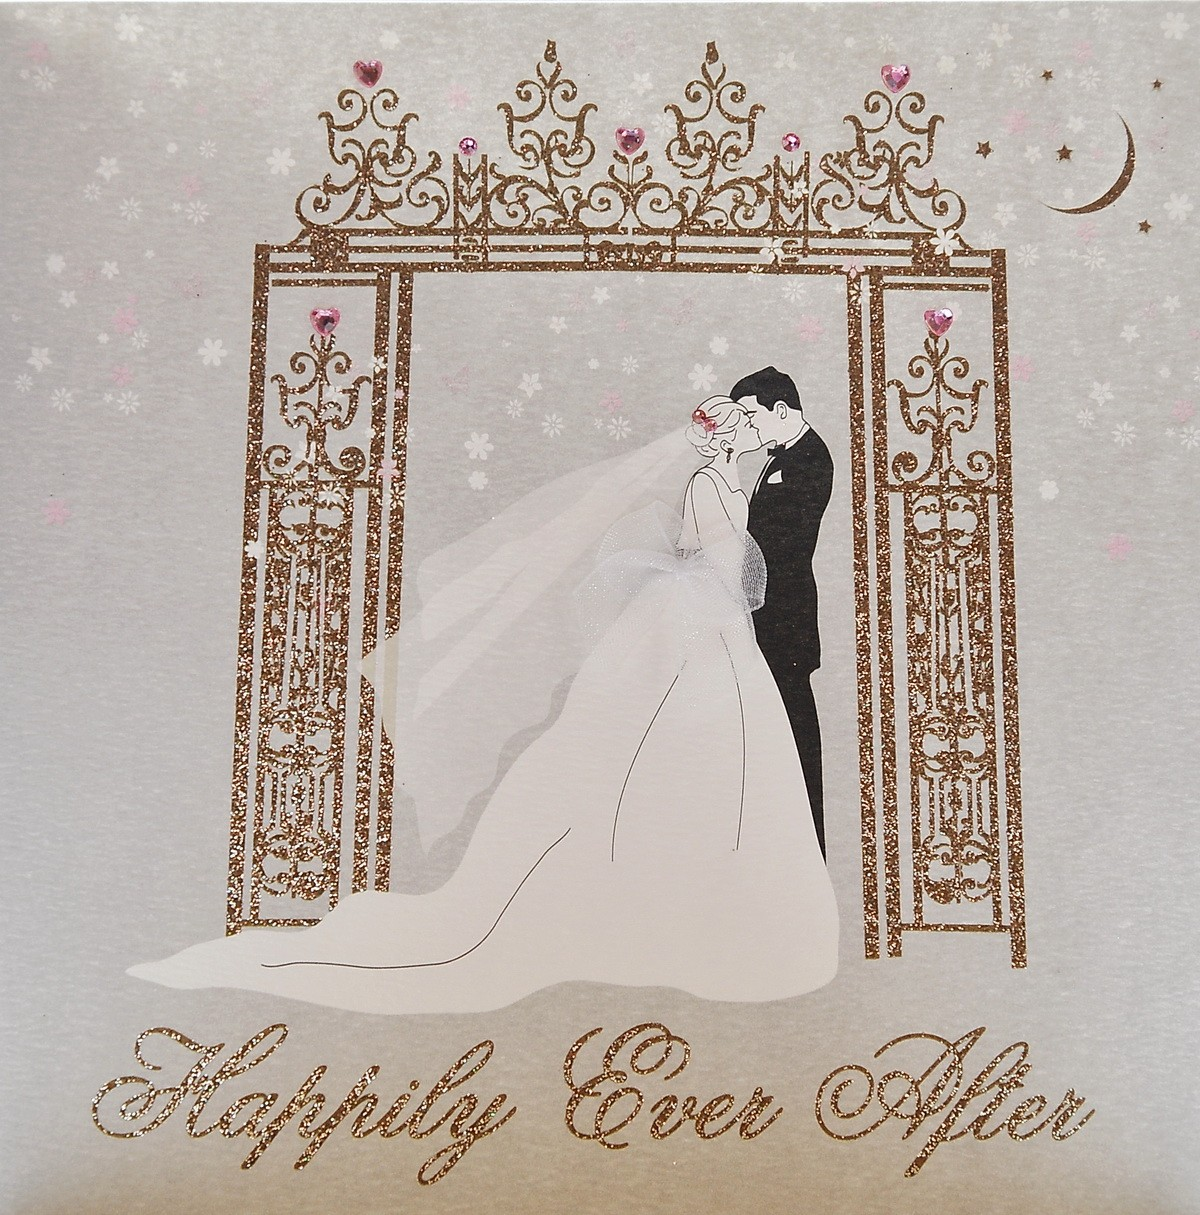 About Marriage: Cards Marriage 2013